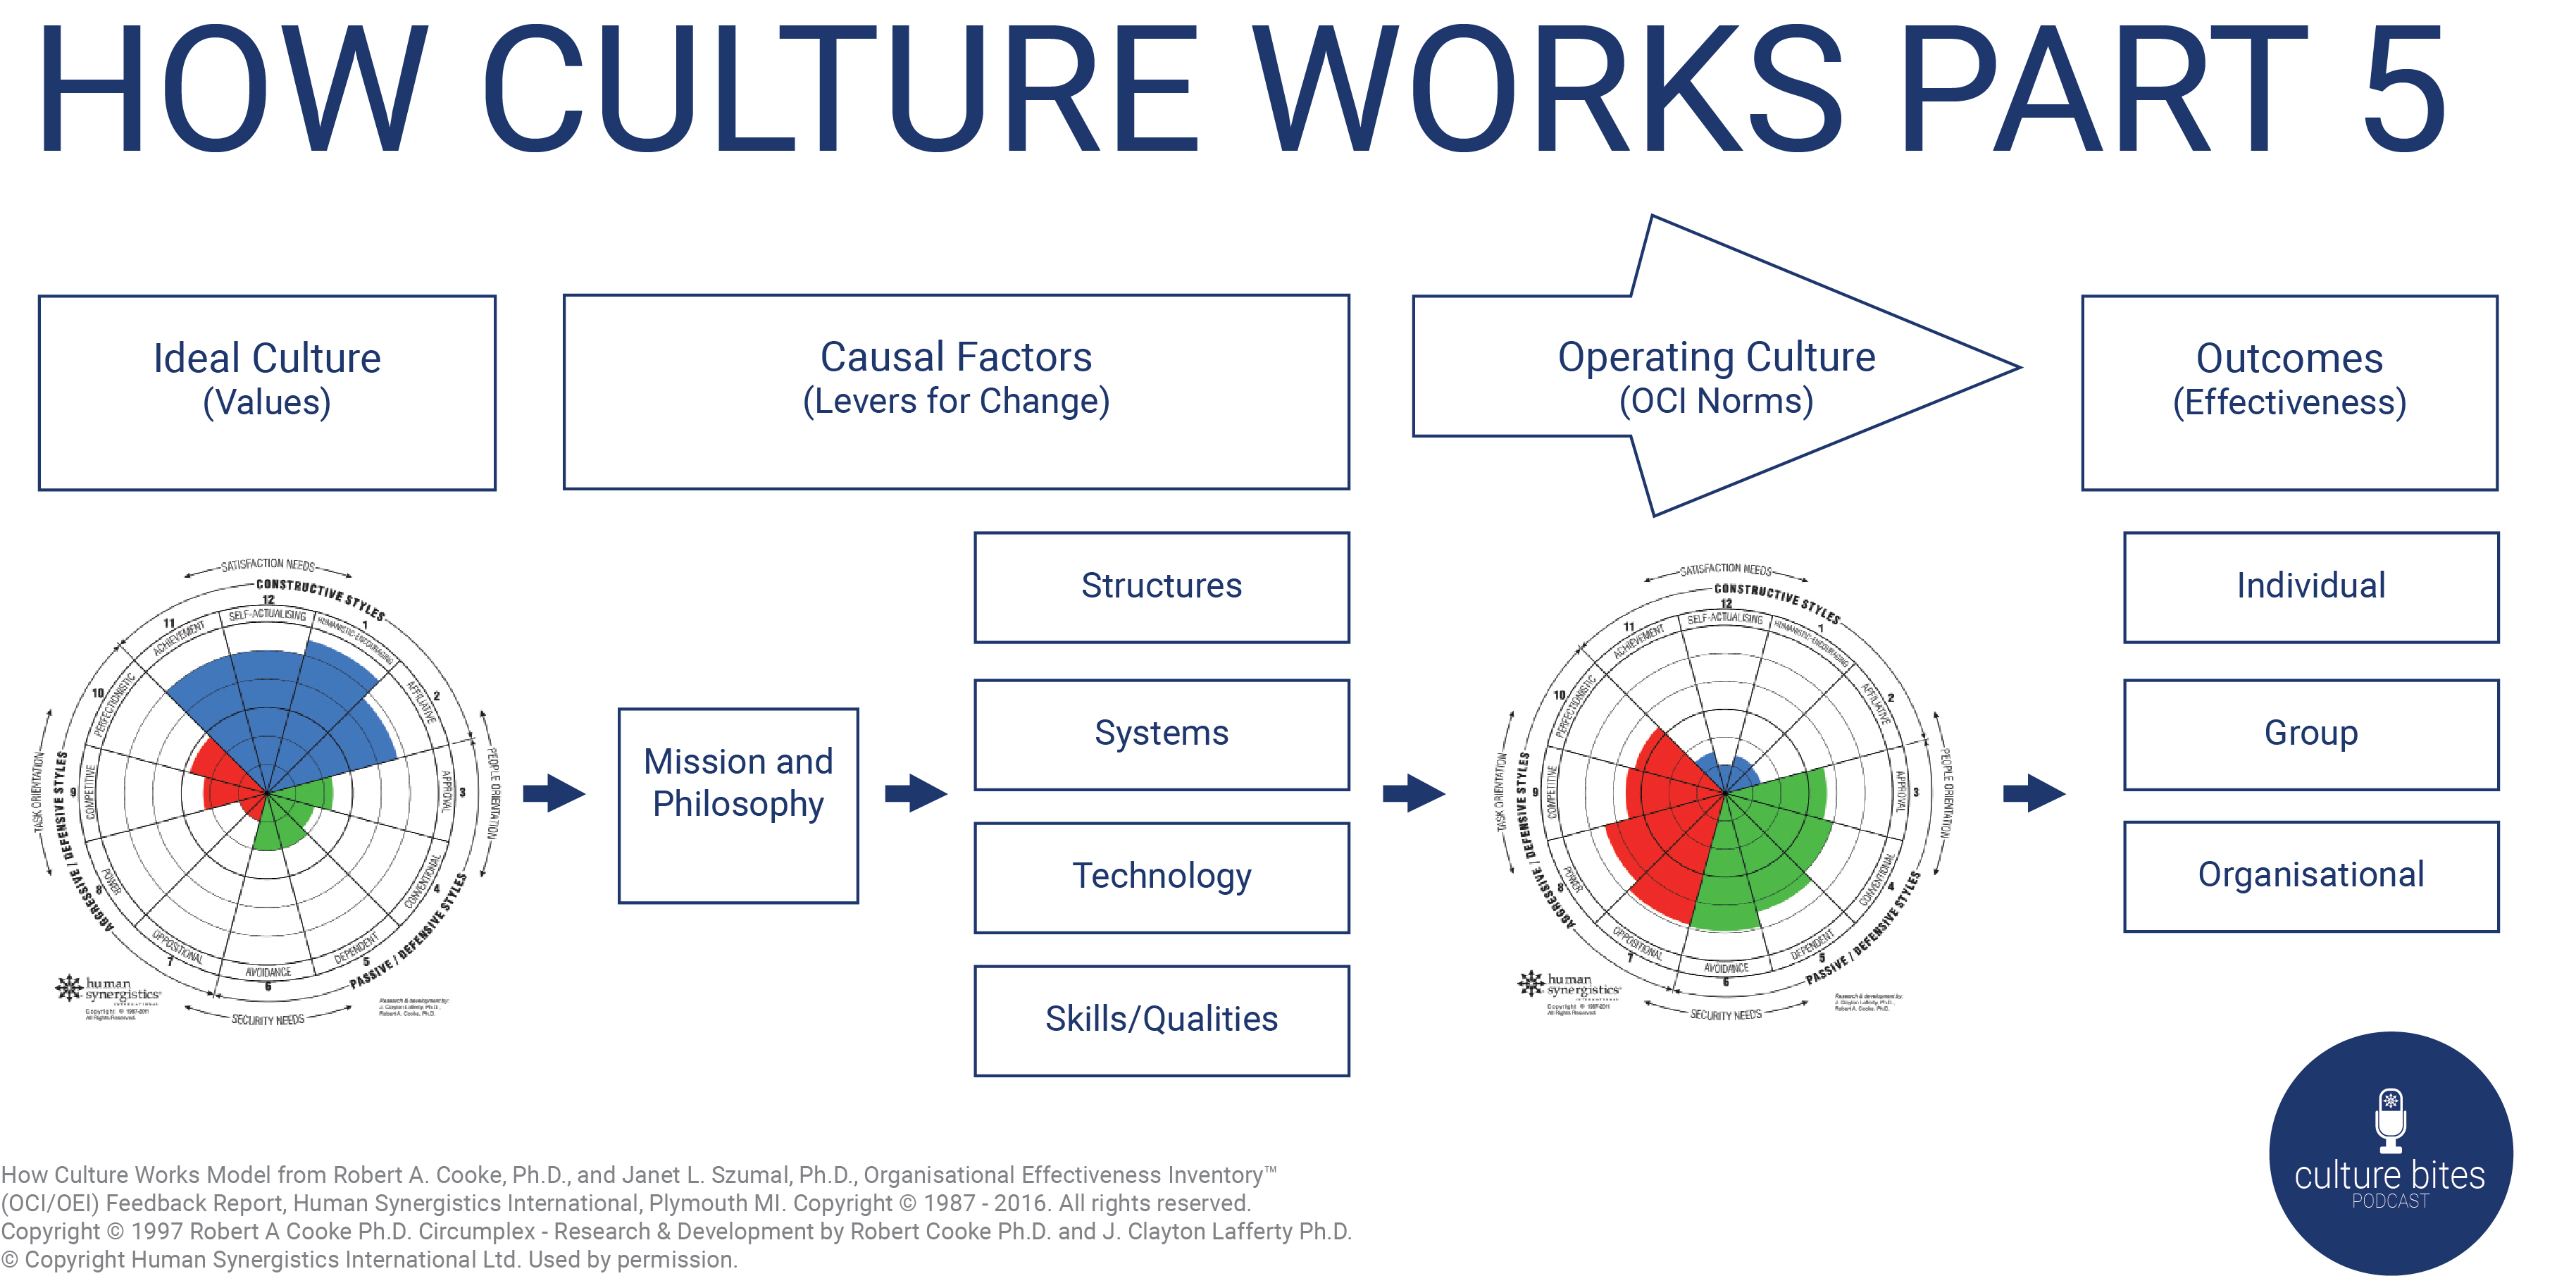 How Culture Works PT 5